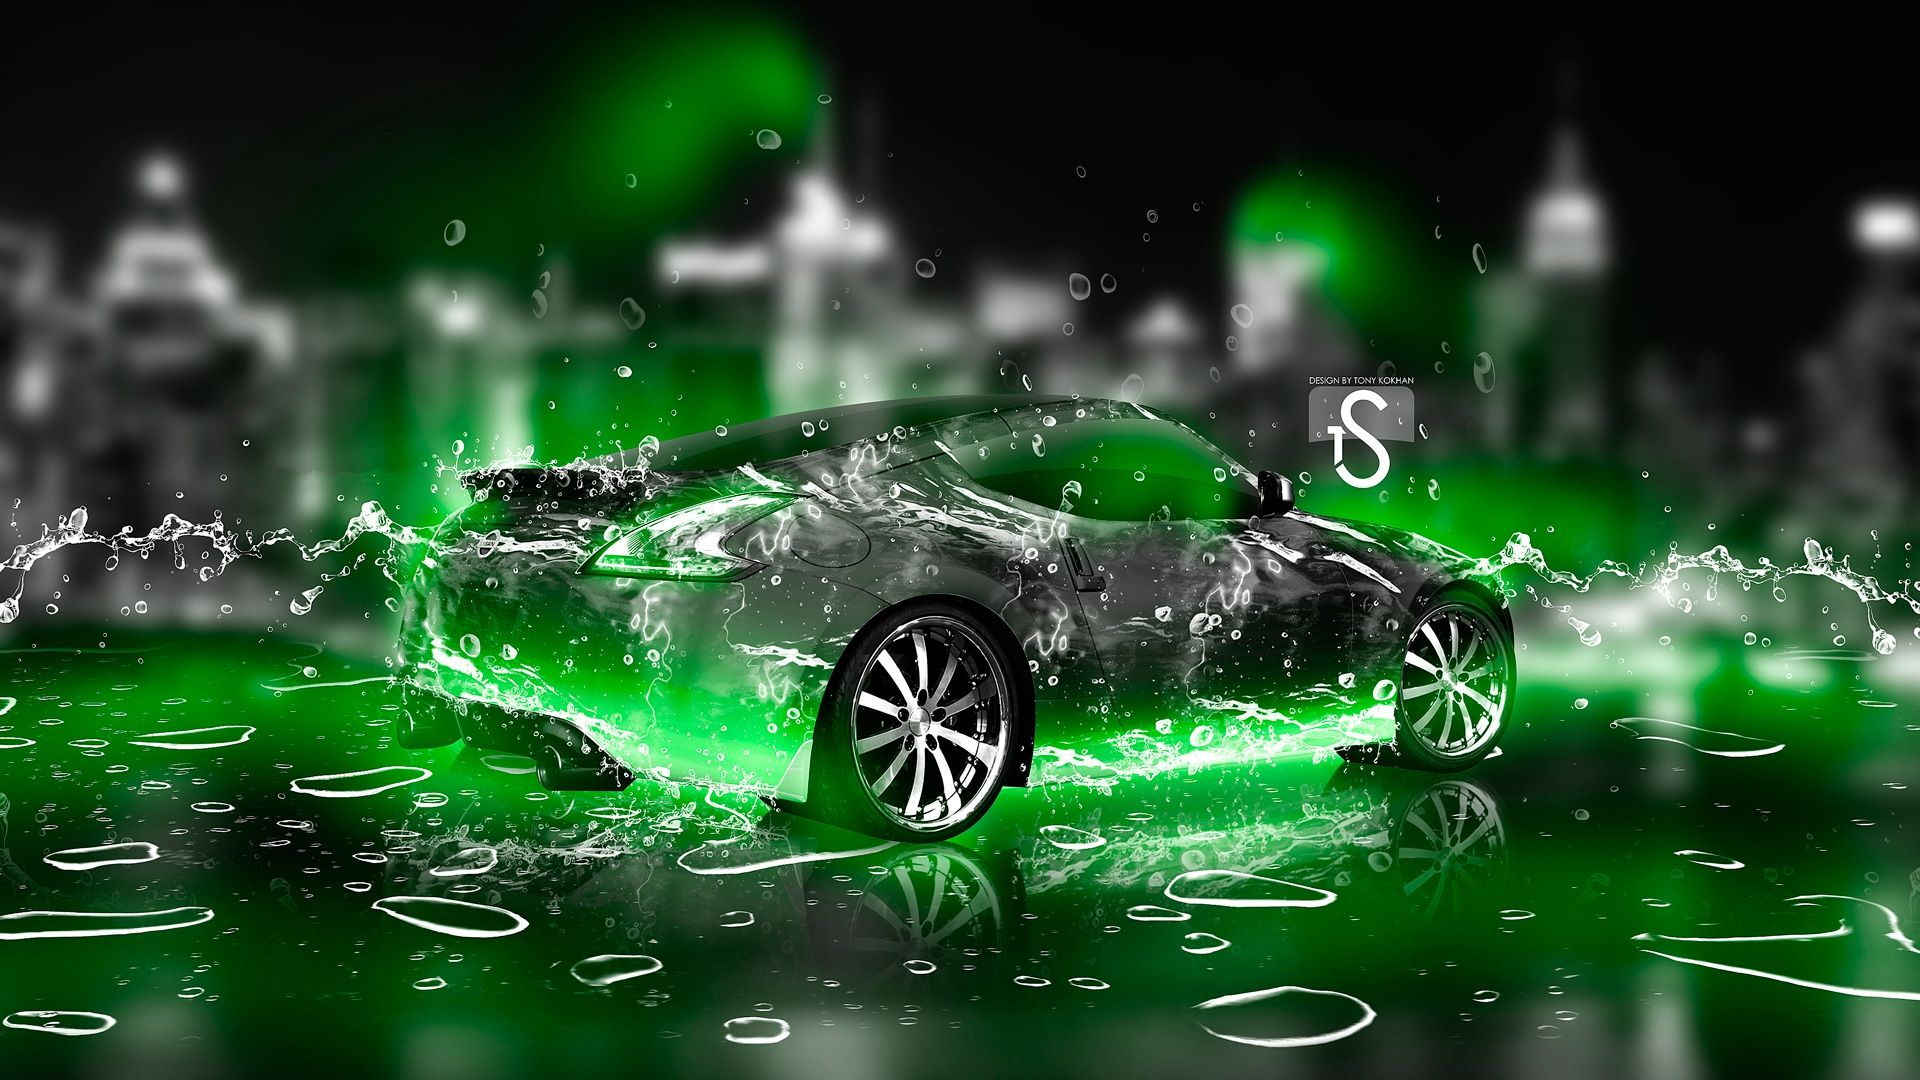 Neon Green Car Wallpapers Top Free Neon Green Car Backgrounds Wallpaperaccess